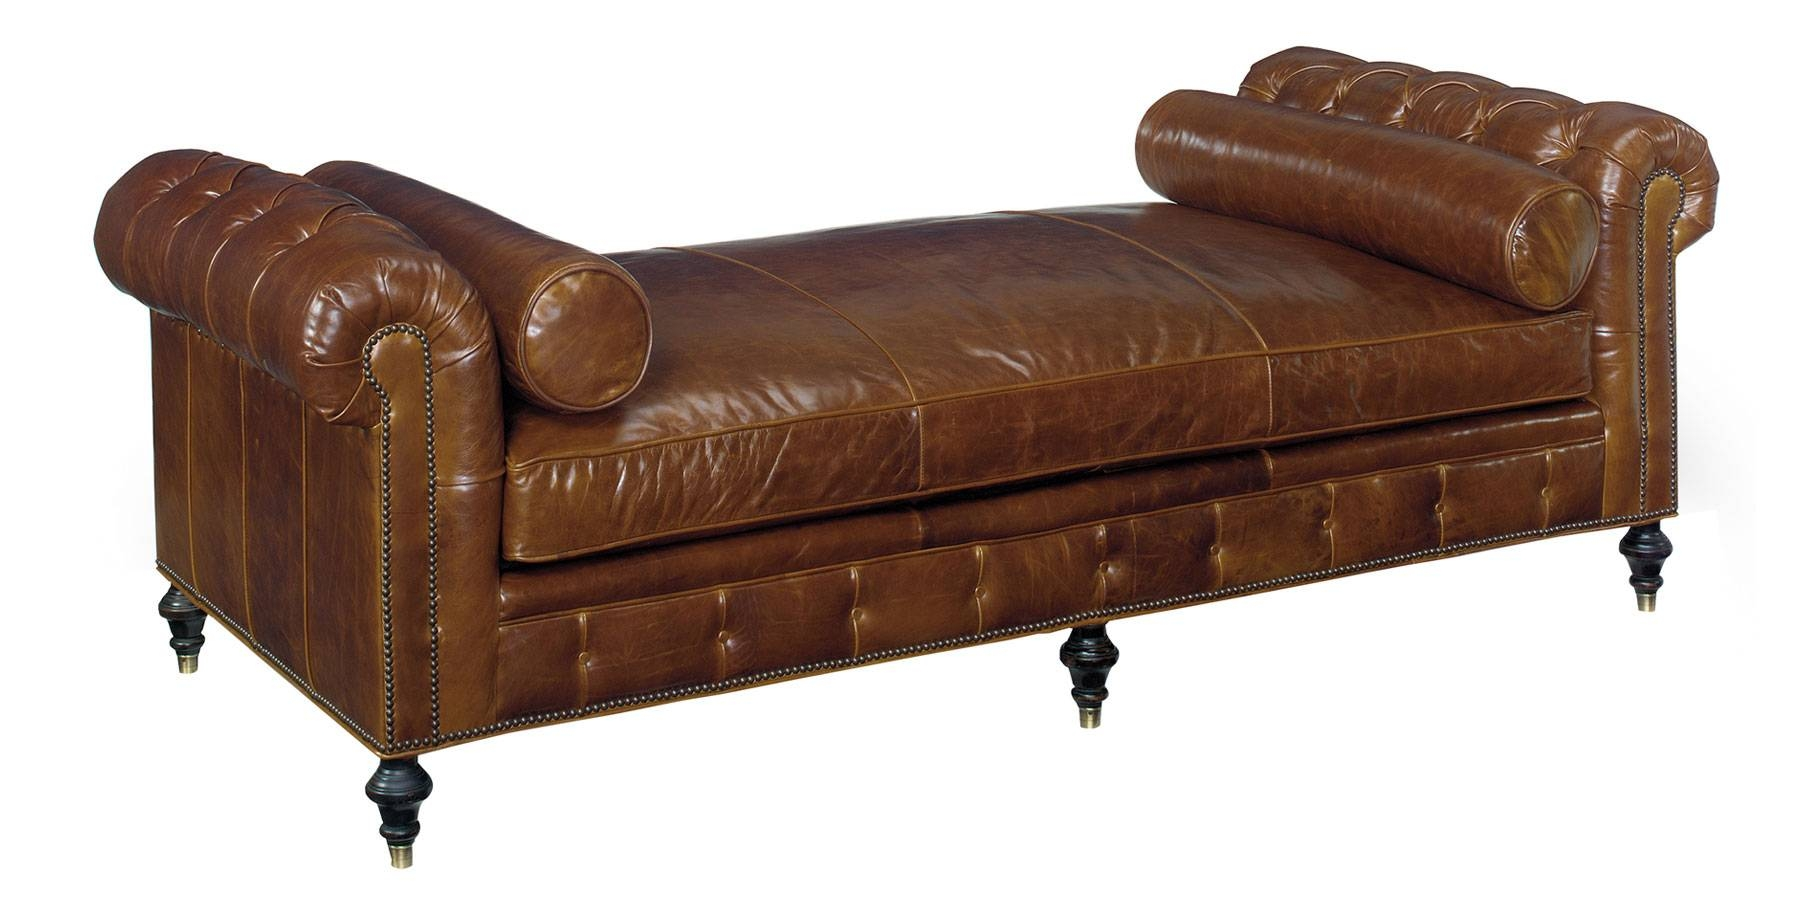 Leather Tufted Chesterfield Daybed With Bench Seat | Club Furniture inside Leather Bench Sofas (Image 16 of 30)